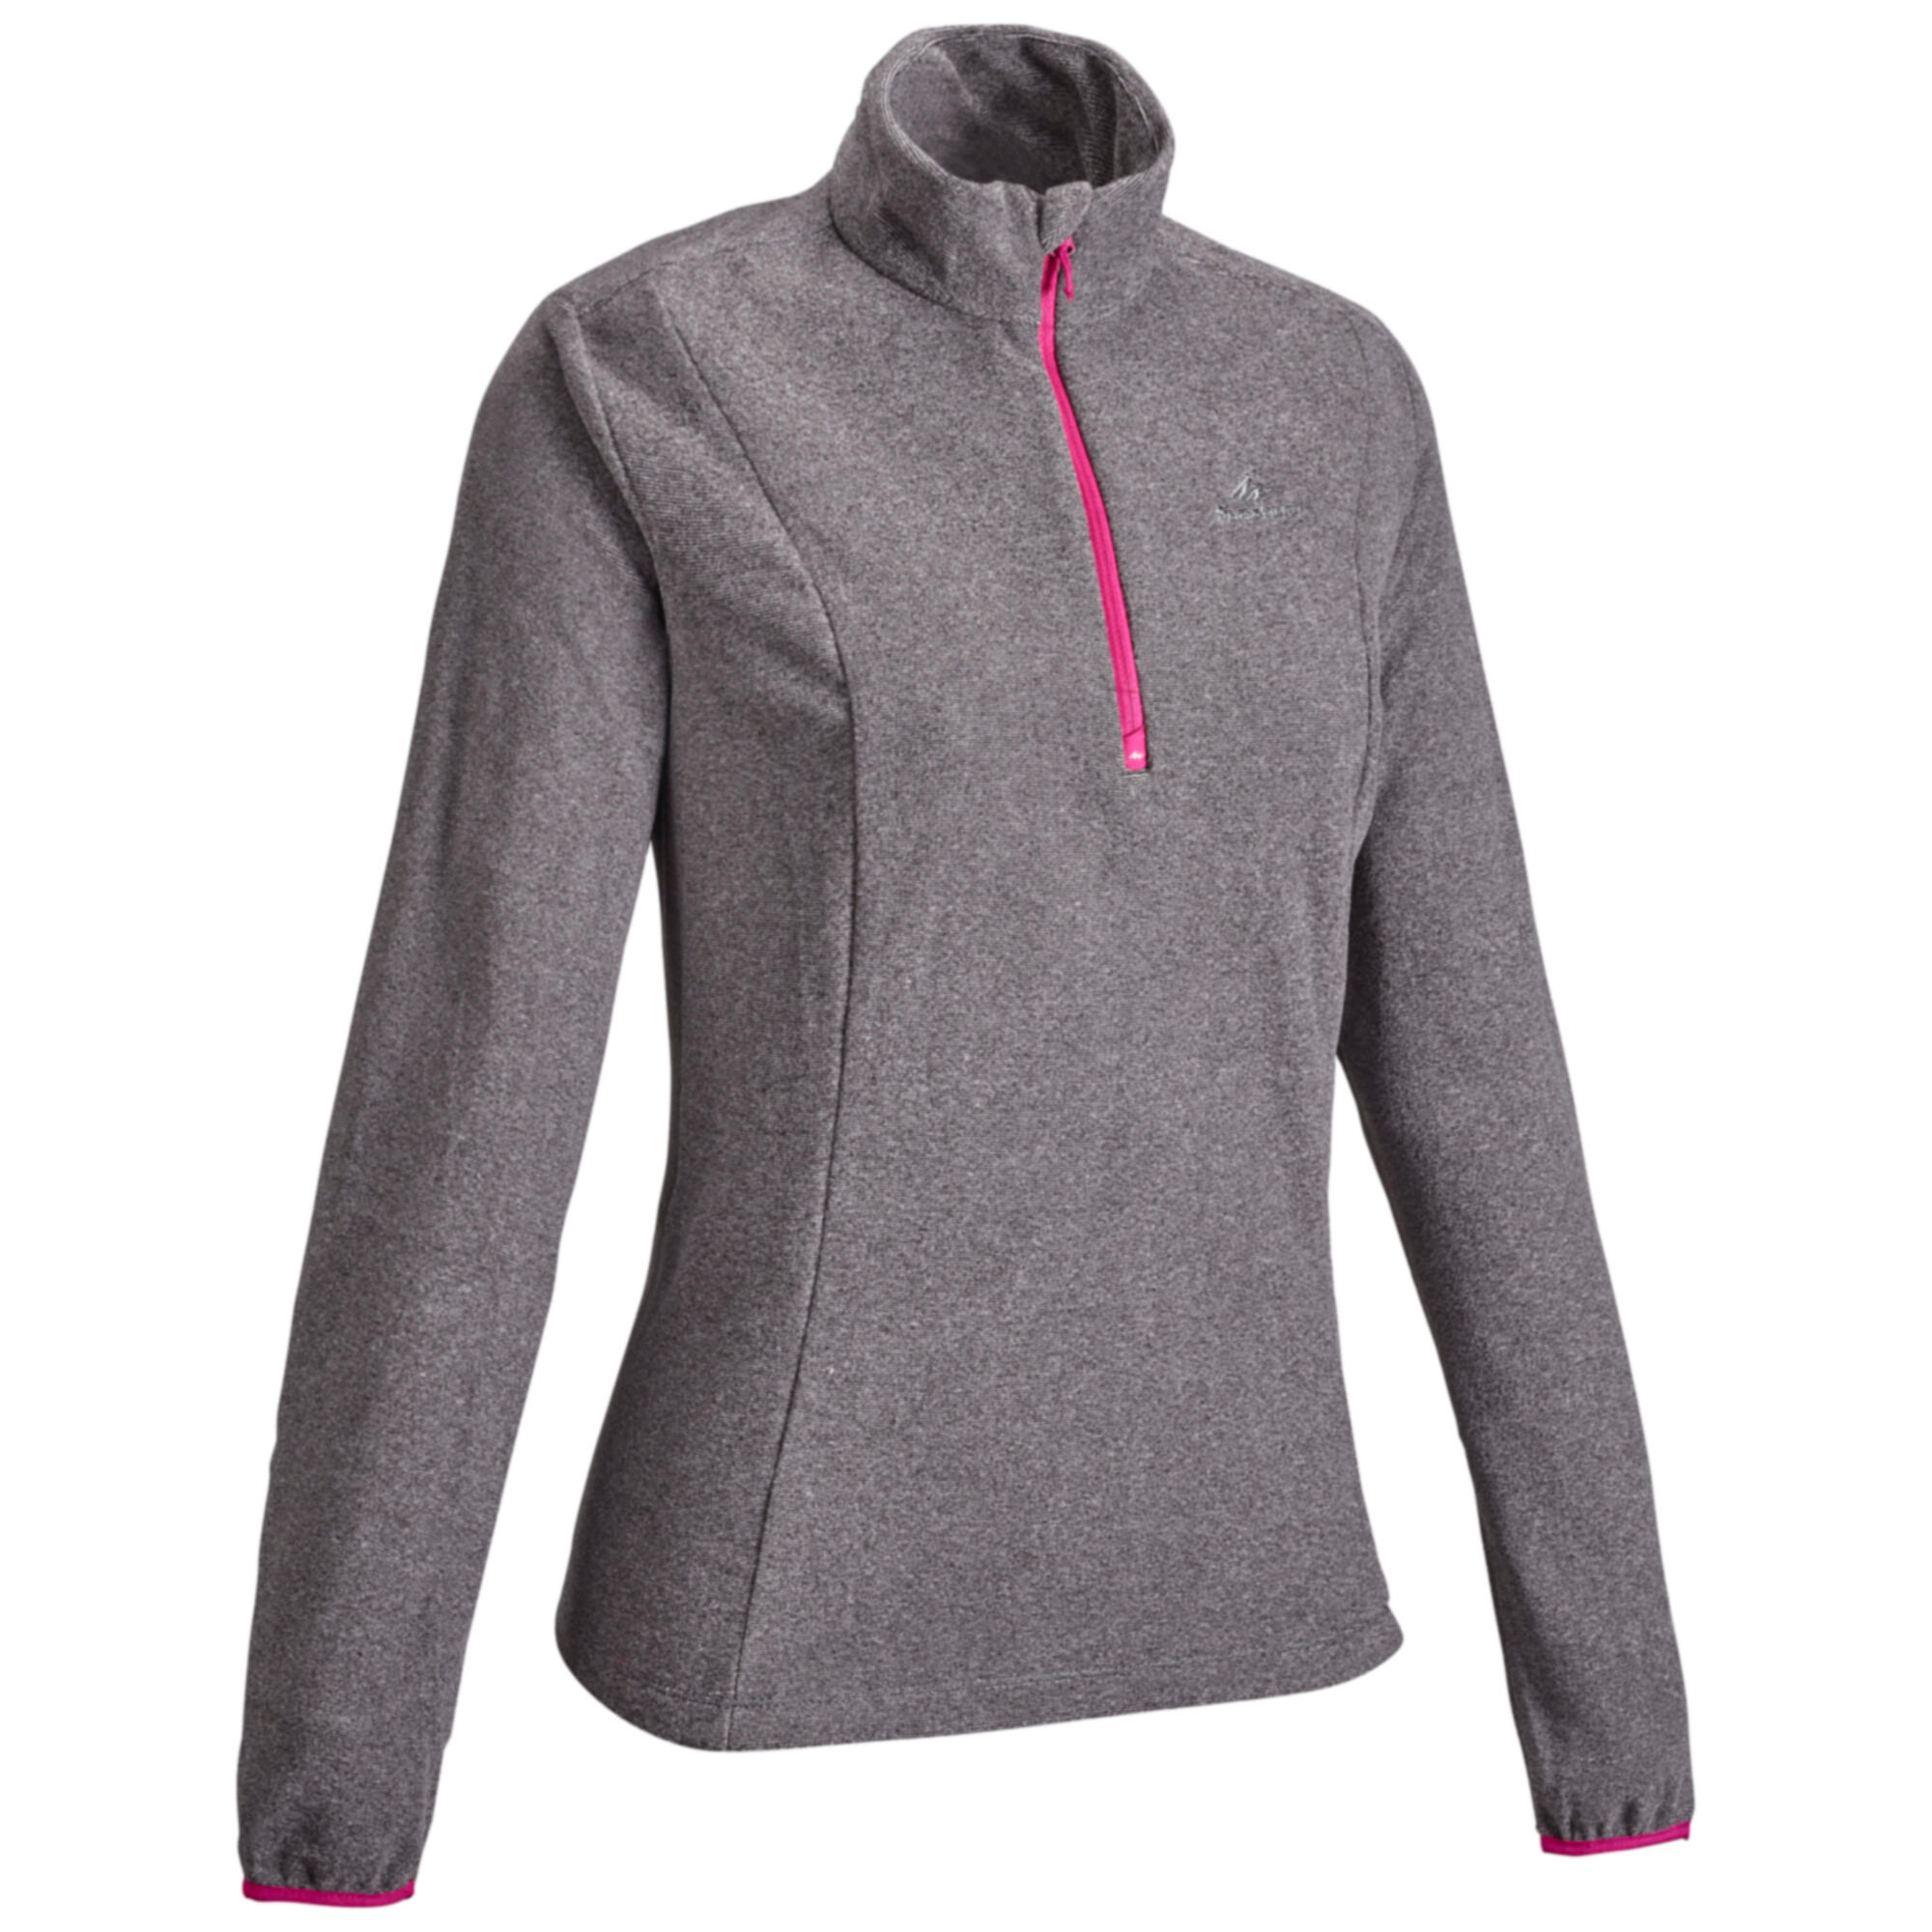 women\u0027s fleeces and pullovers Carbon 14 to Nitrogen 14 Beta Particle mh100 women\u0027s